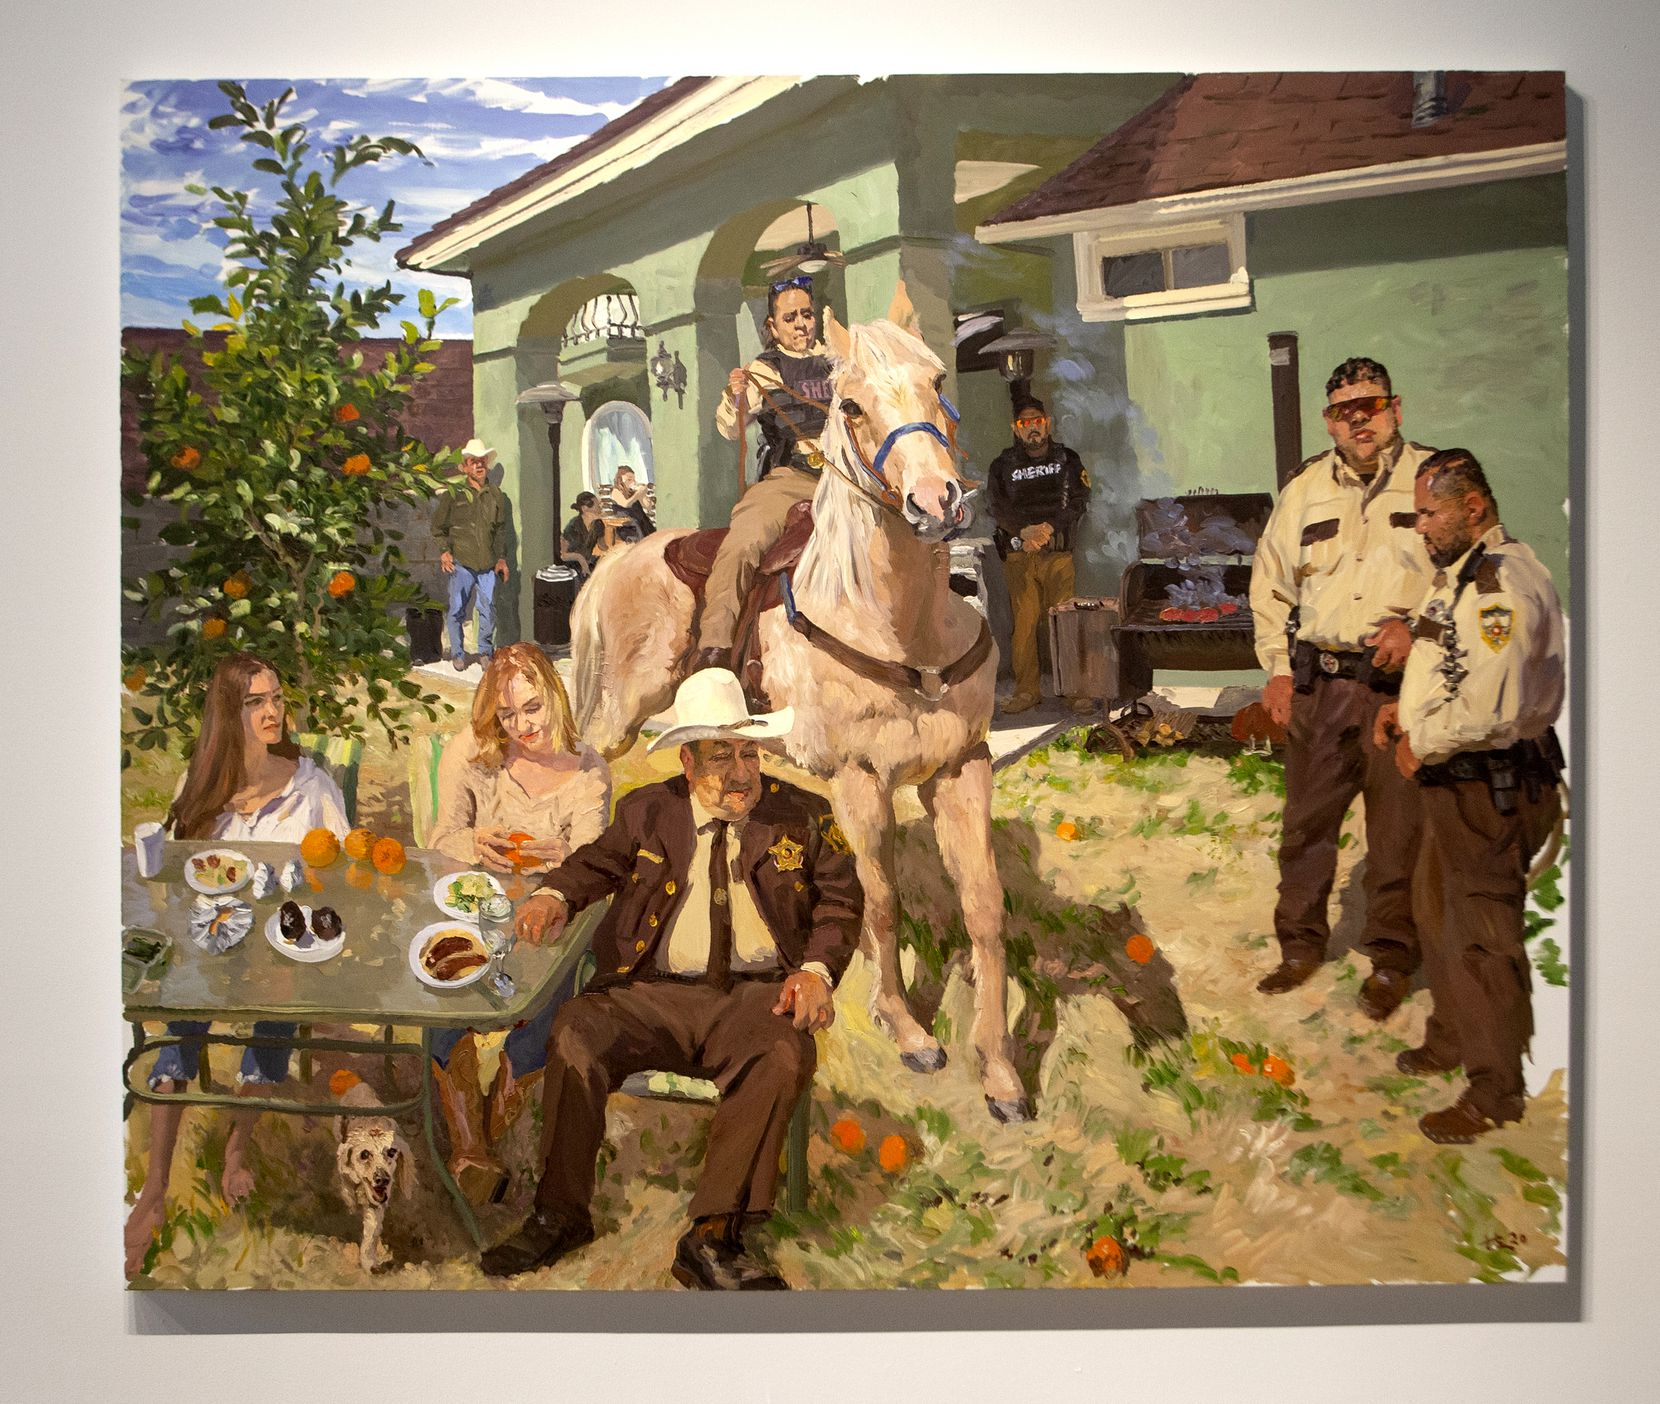 """Liu Xiaodong, """"Tom, his Family, and his Friends, 2020; oil on canvas at the exhibition """"Liu Xiaodong: Borders"""" at Dallas Contemporary."""